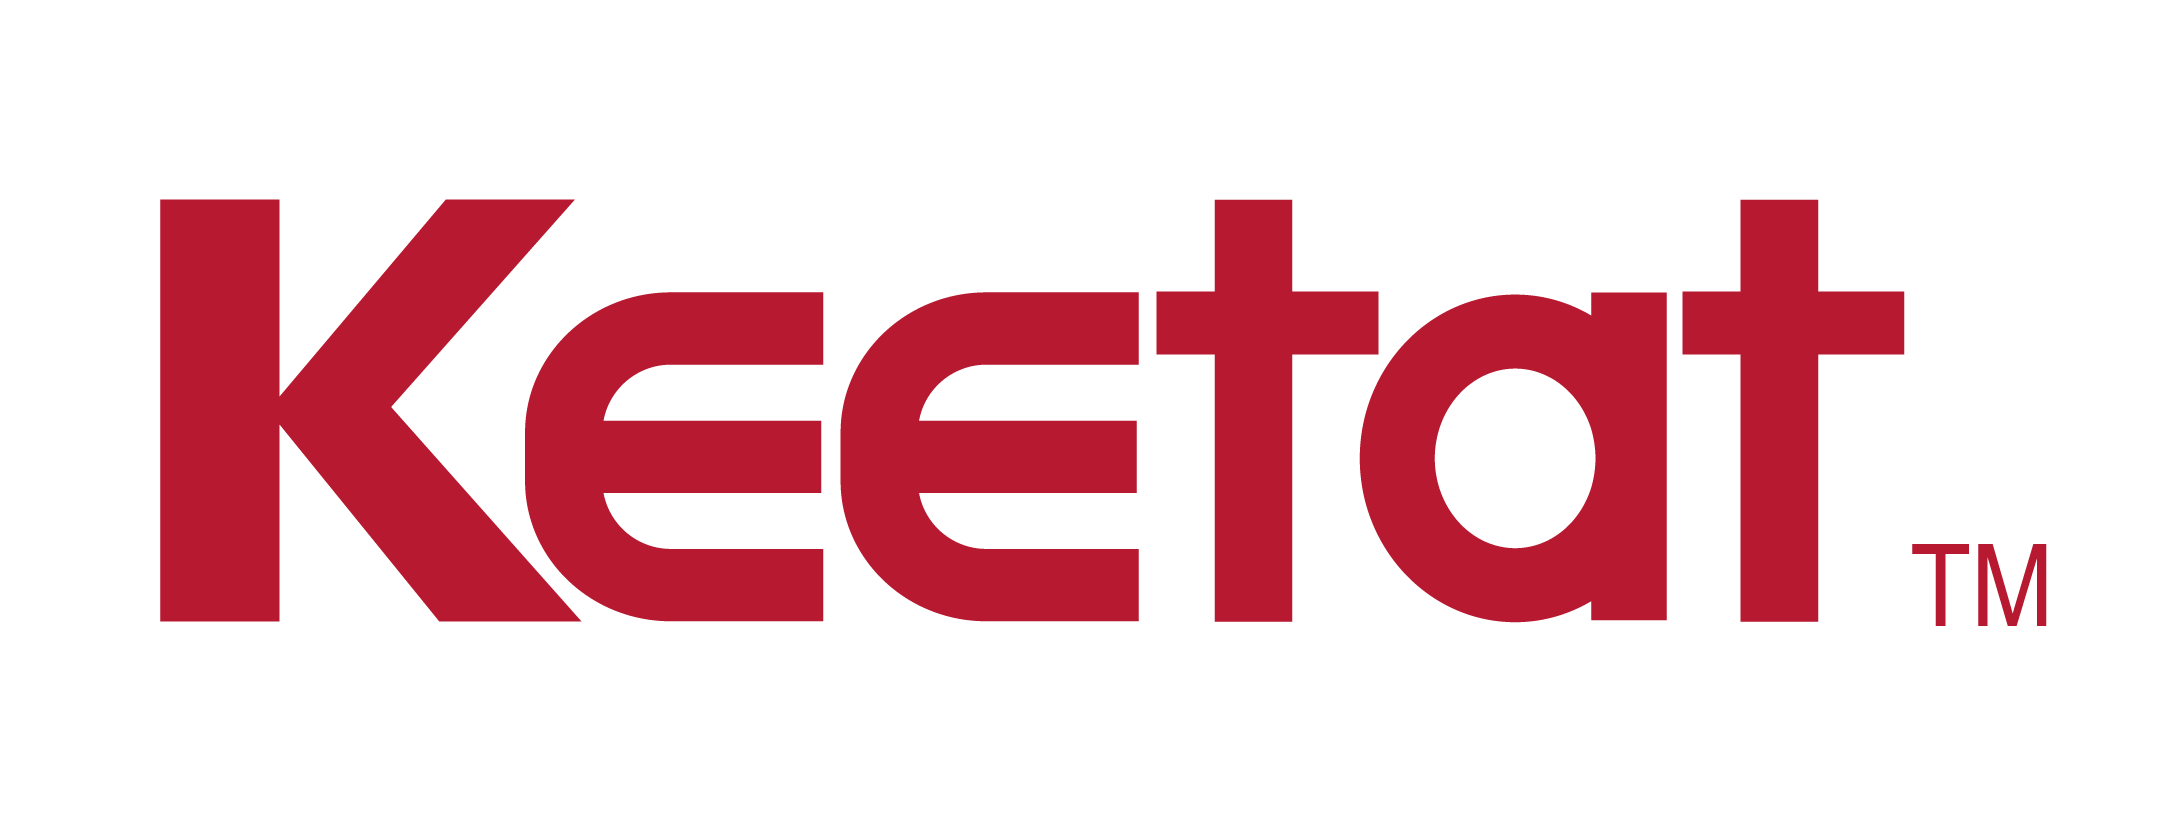 Kee Tat Manufactory Holdings Ltd.  Logo